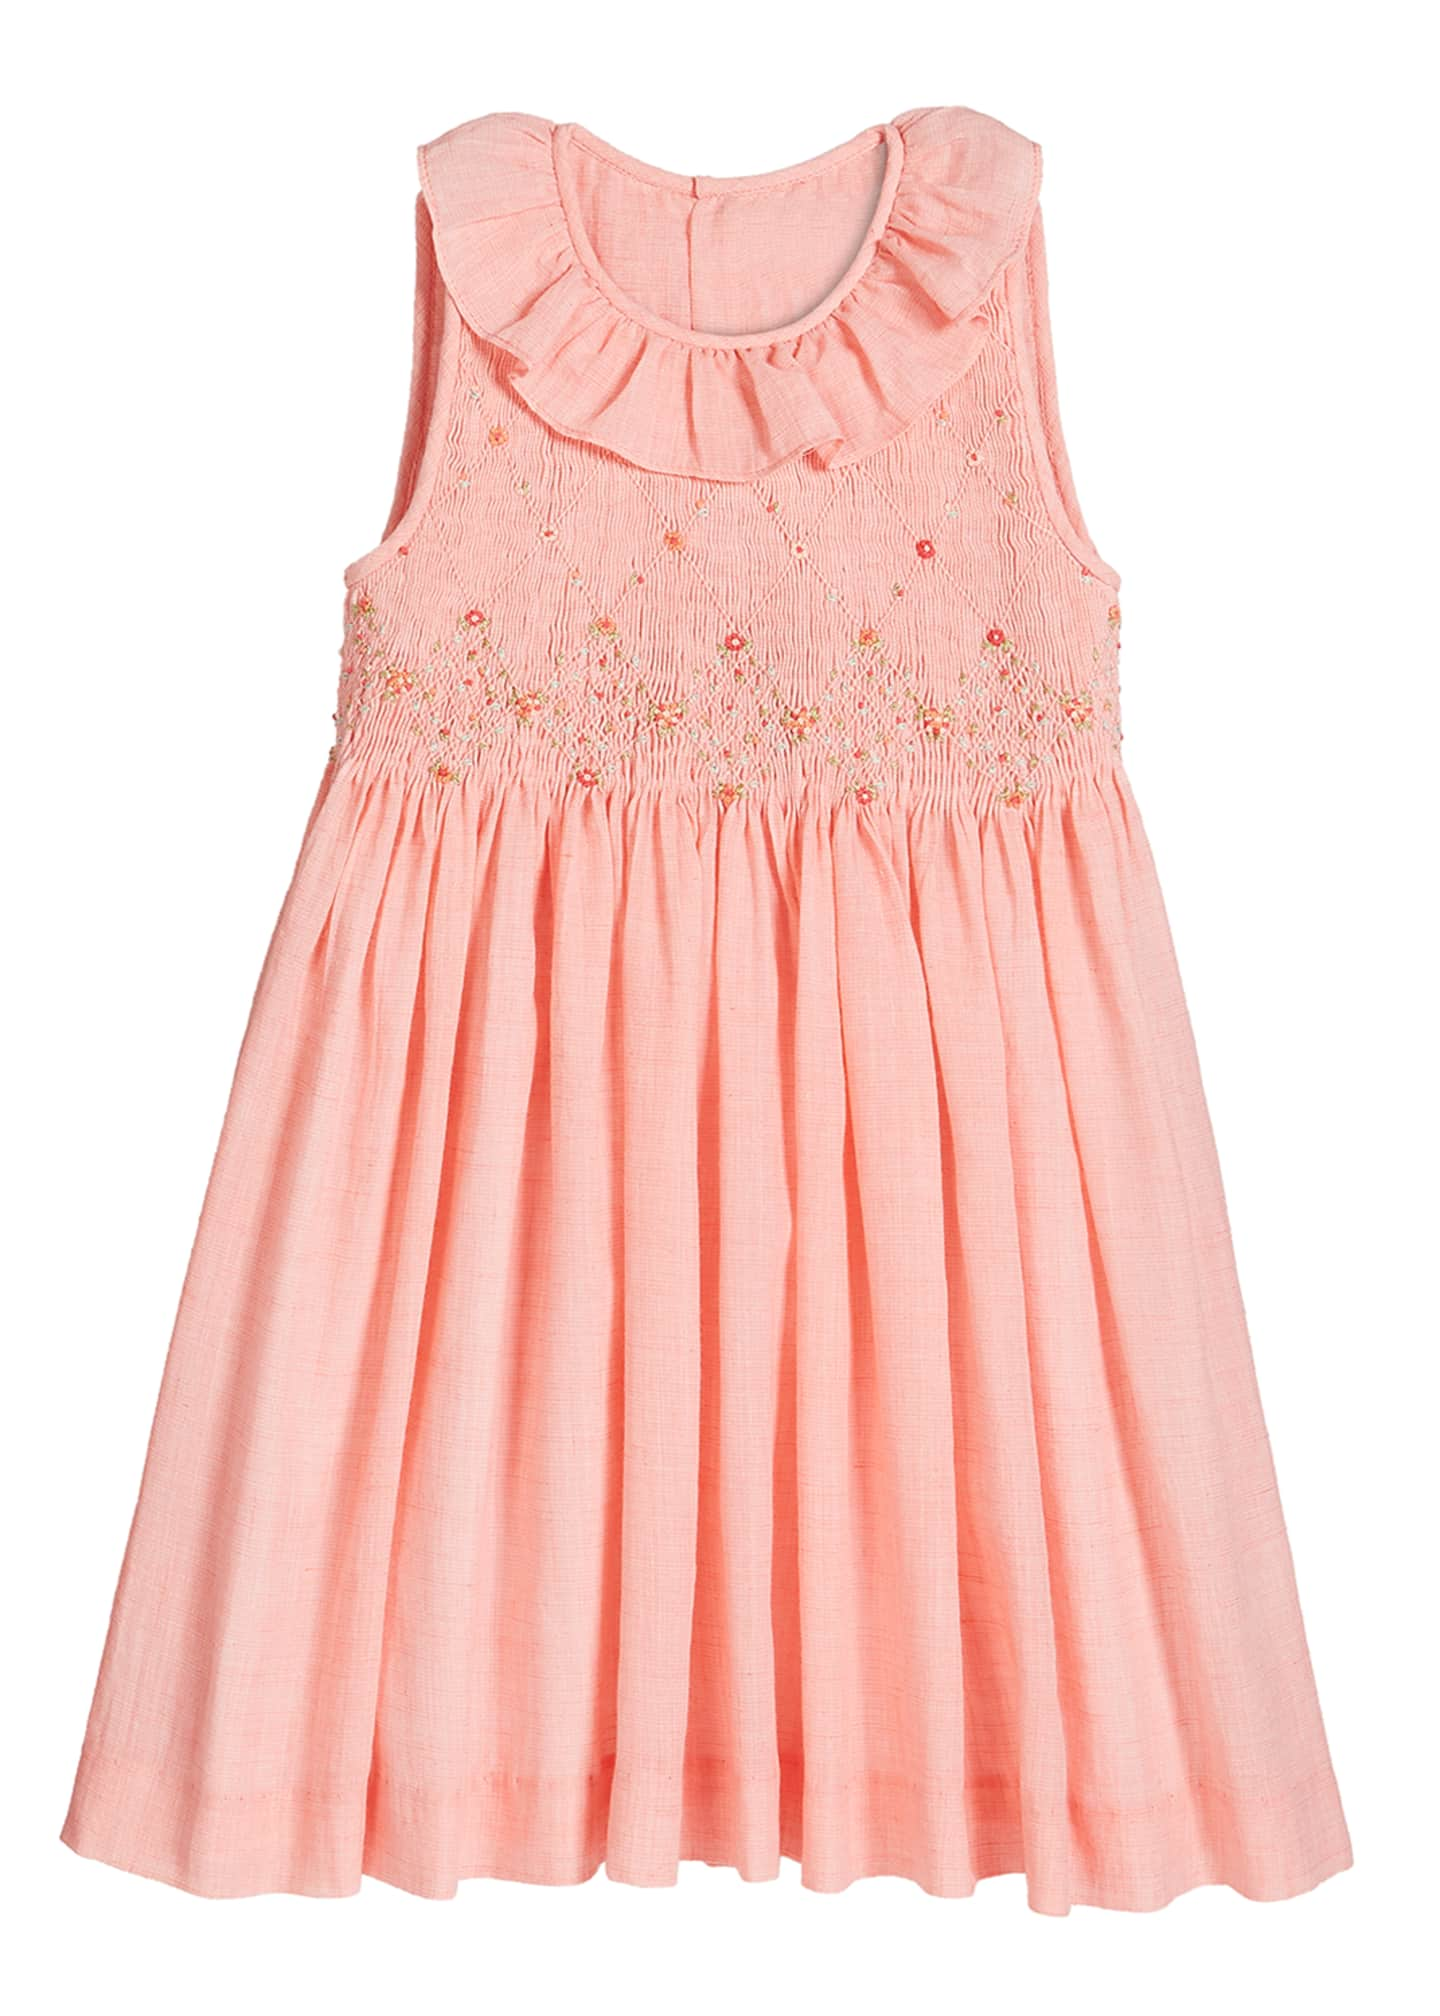 Image 1 of 2: Girl's Coral Smocked Dress, Size 4-6X